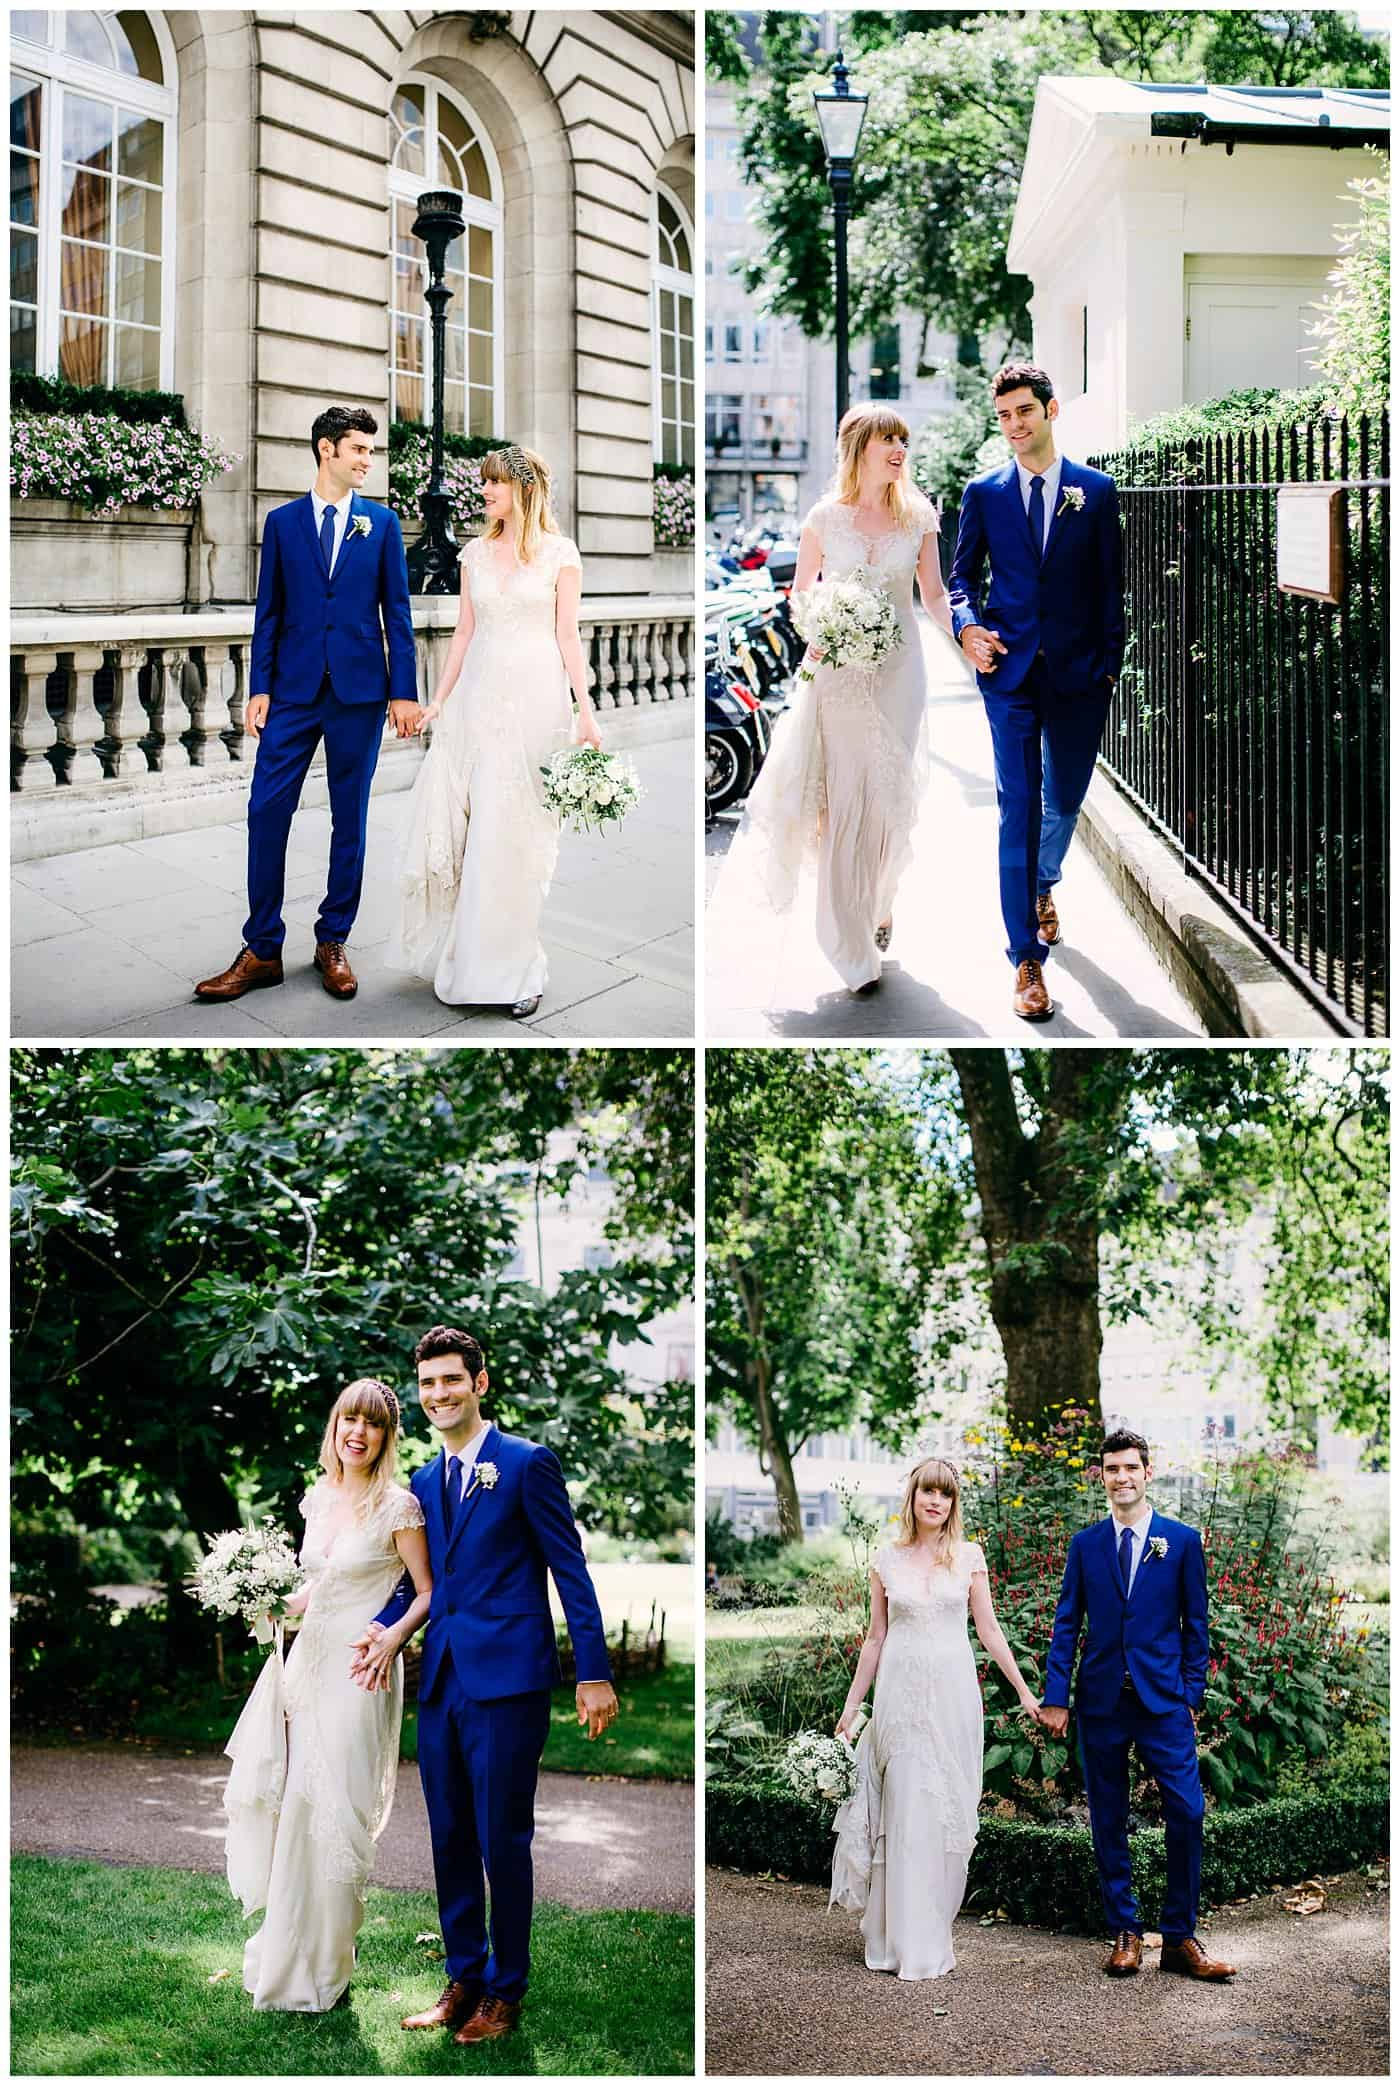 RAC London wedding photos